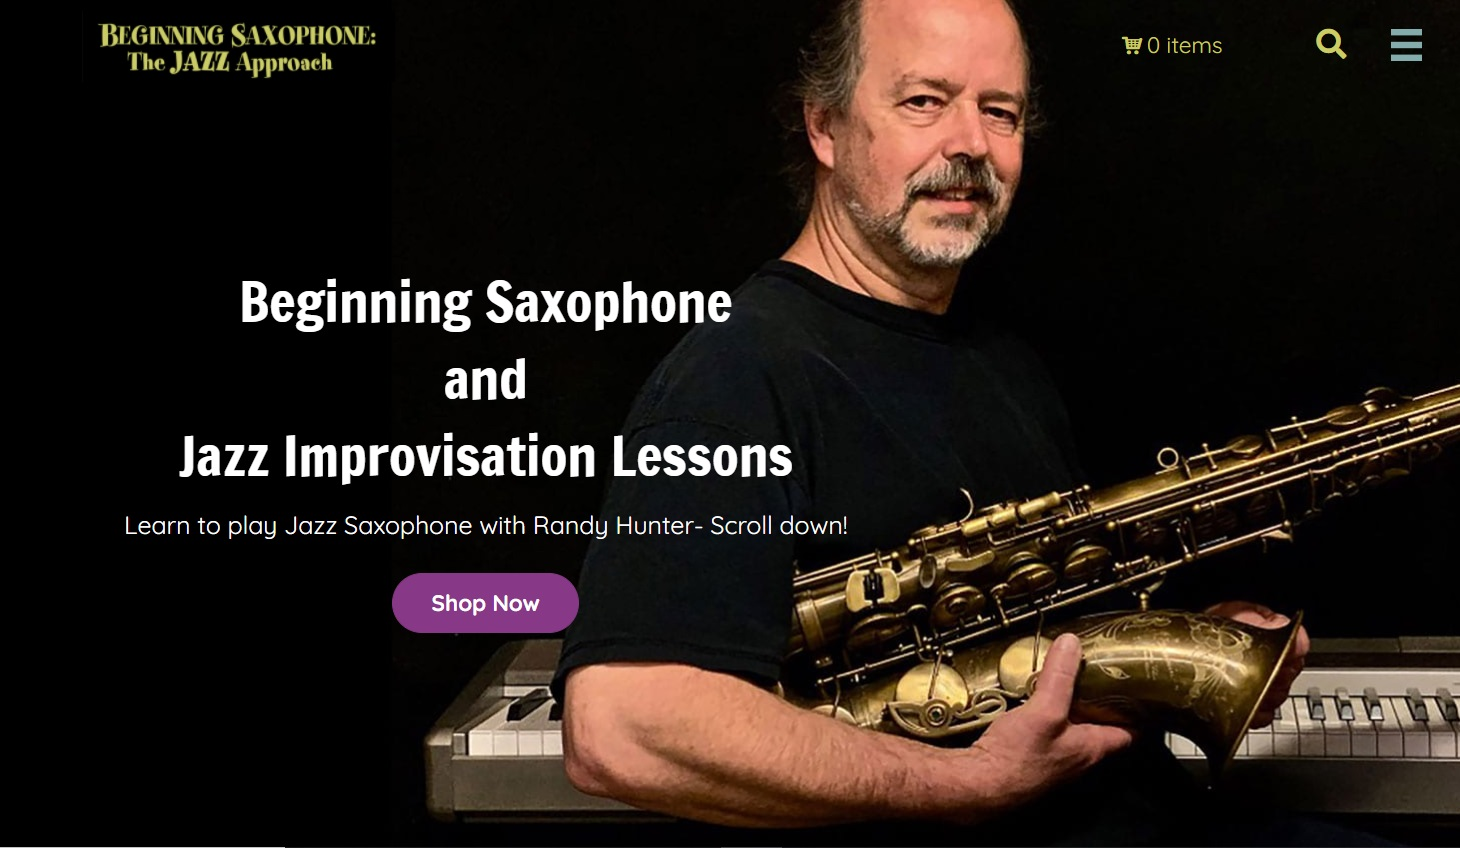 Beginning Saxophone and Jazz improvisation lessons with Randy Hunter